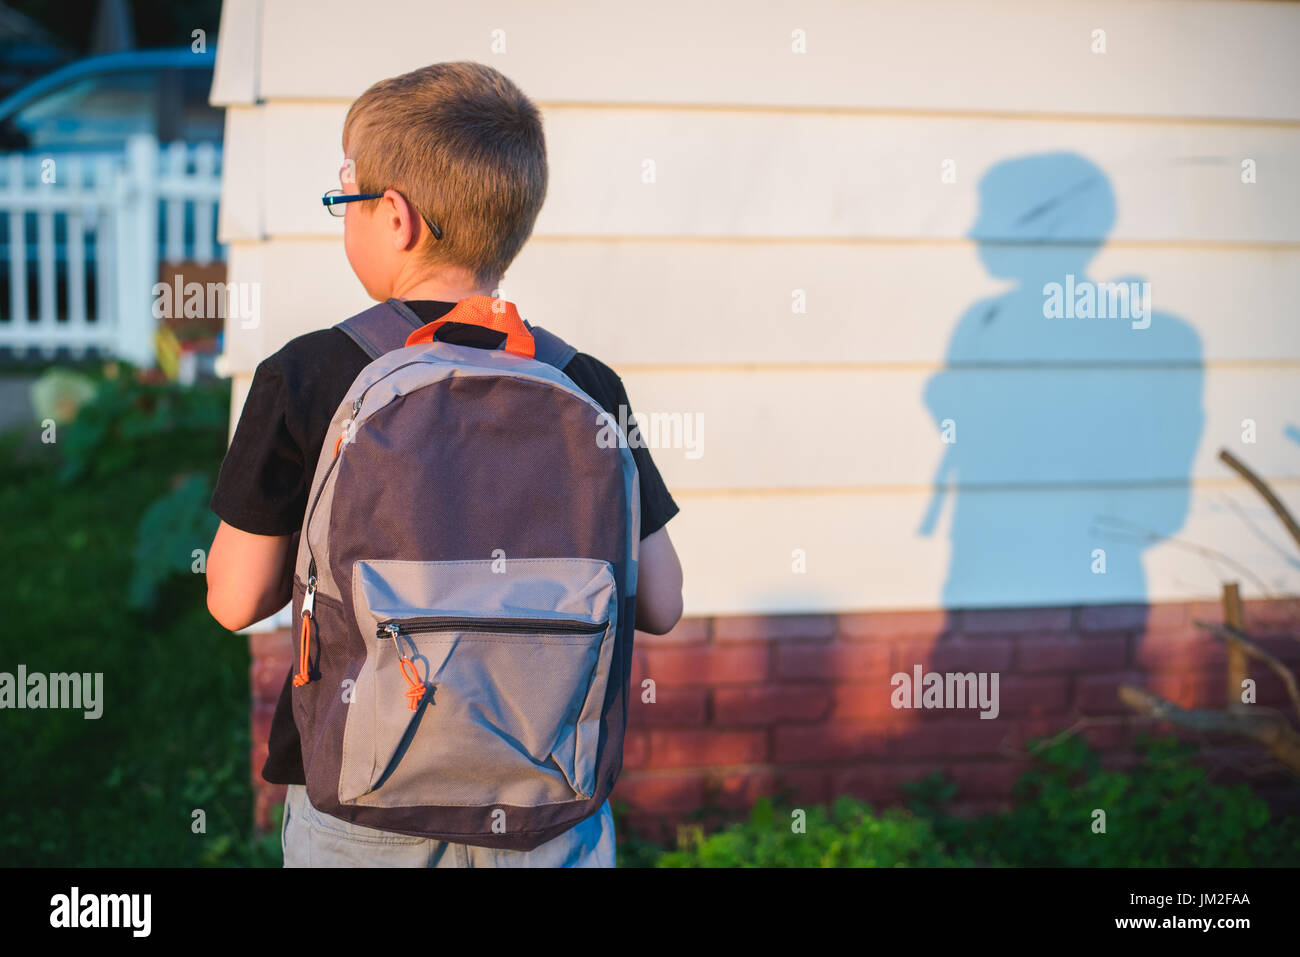 A student wearing a back pack or book bag and ready for school. - Stock Image